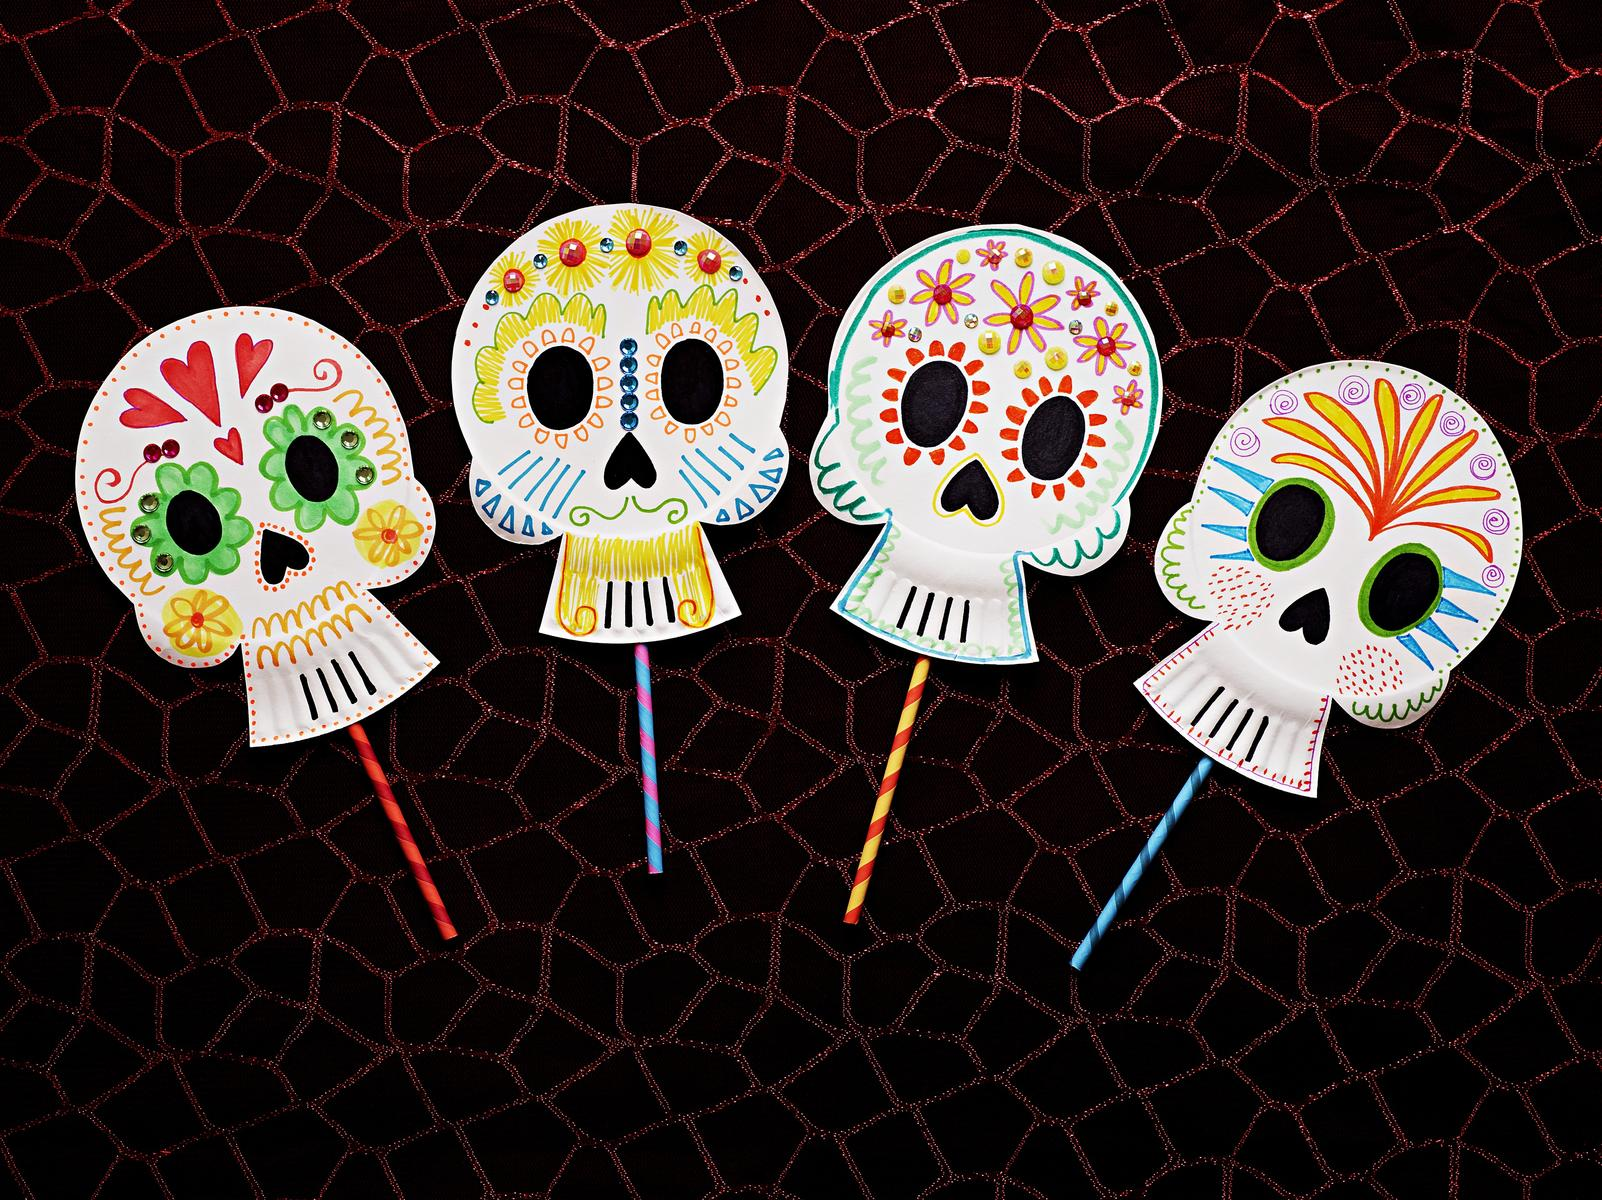 Decorate Your House with Cool & Creepy Halloween Crafts